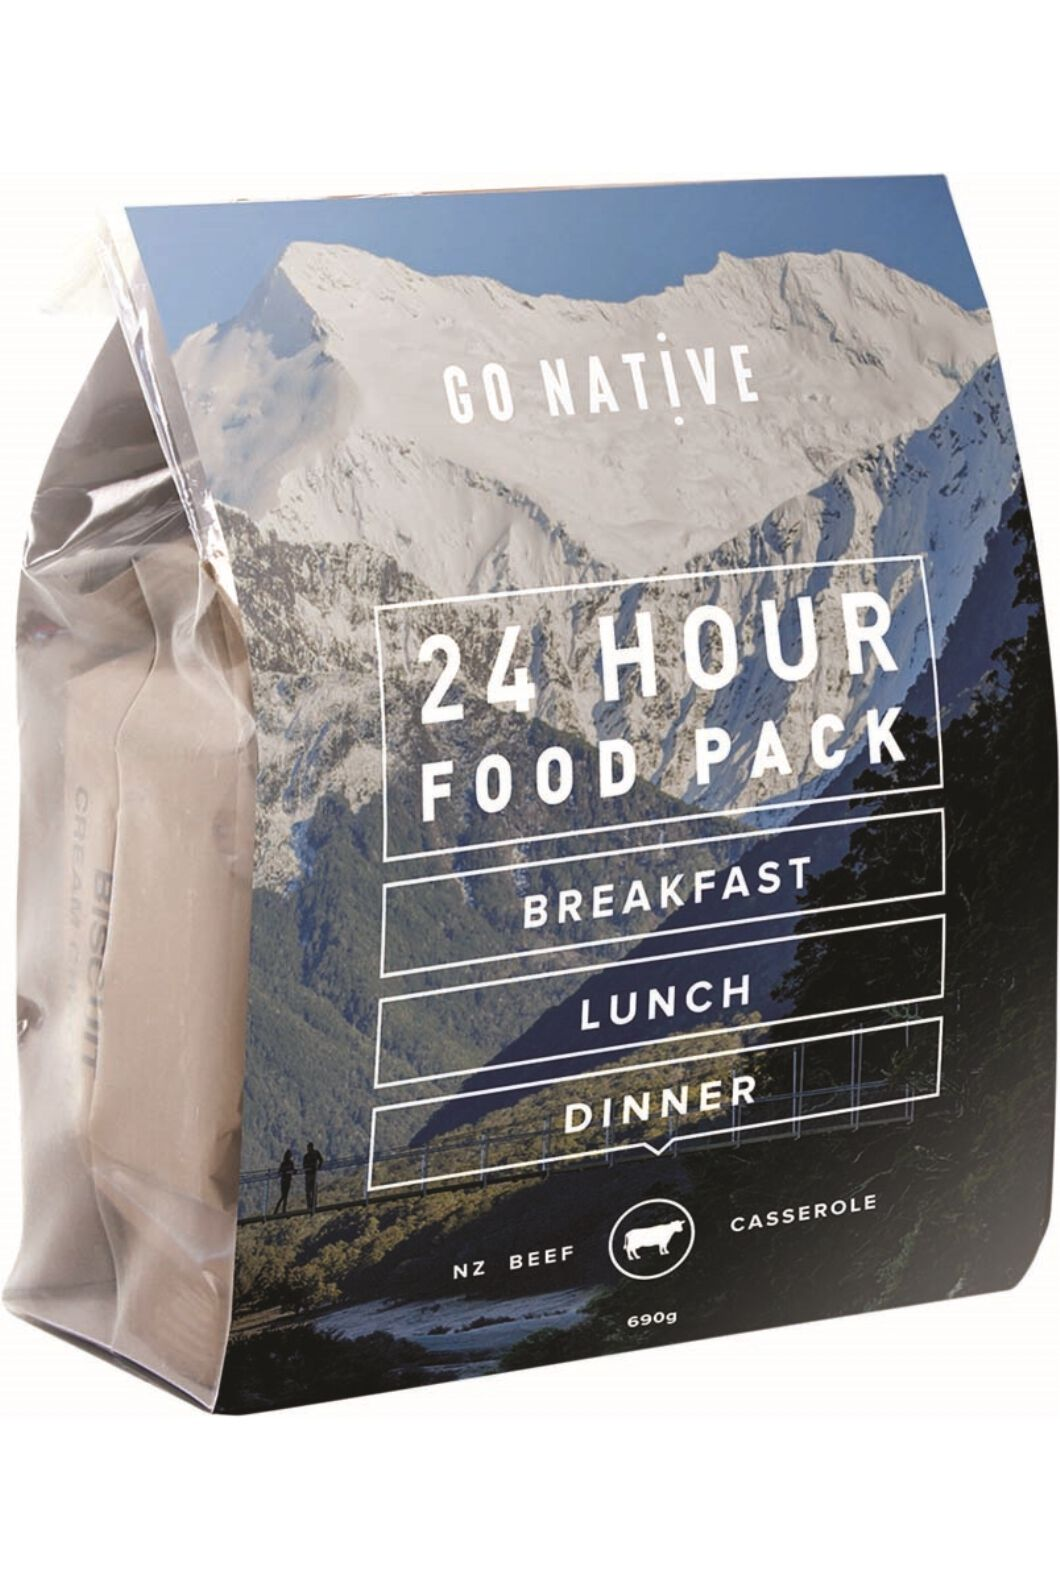 Go Native All Day Expedition Food - Beef Casserole, None, hi-res